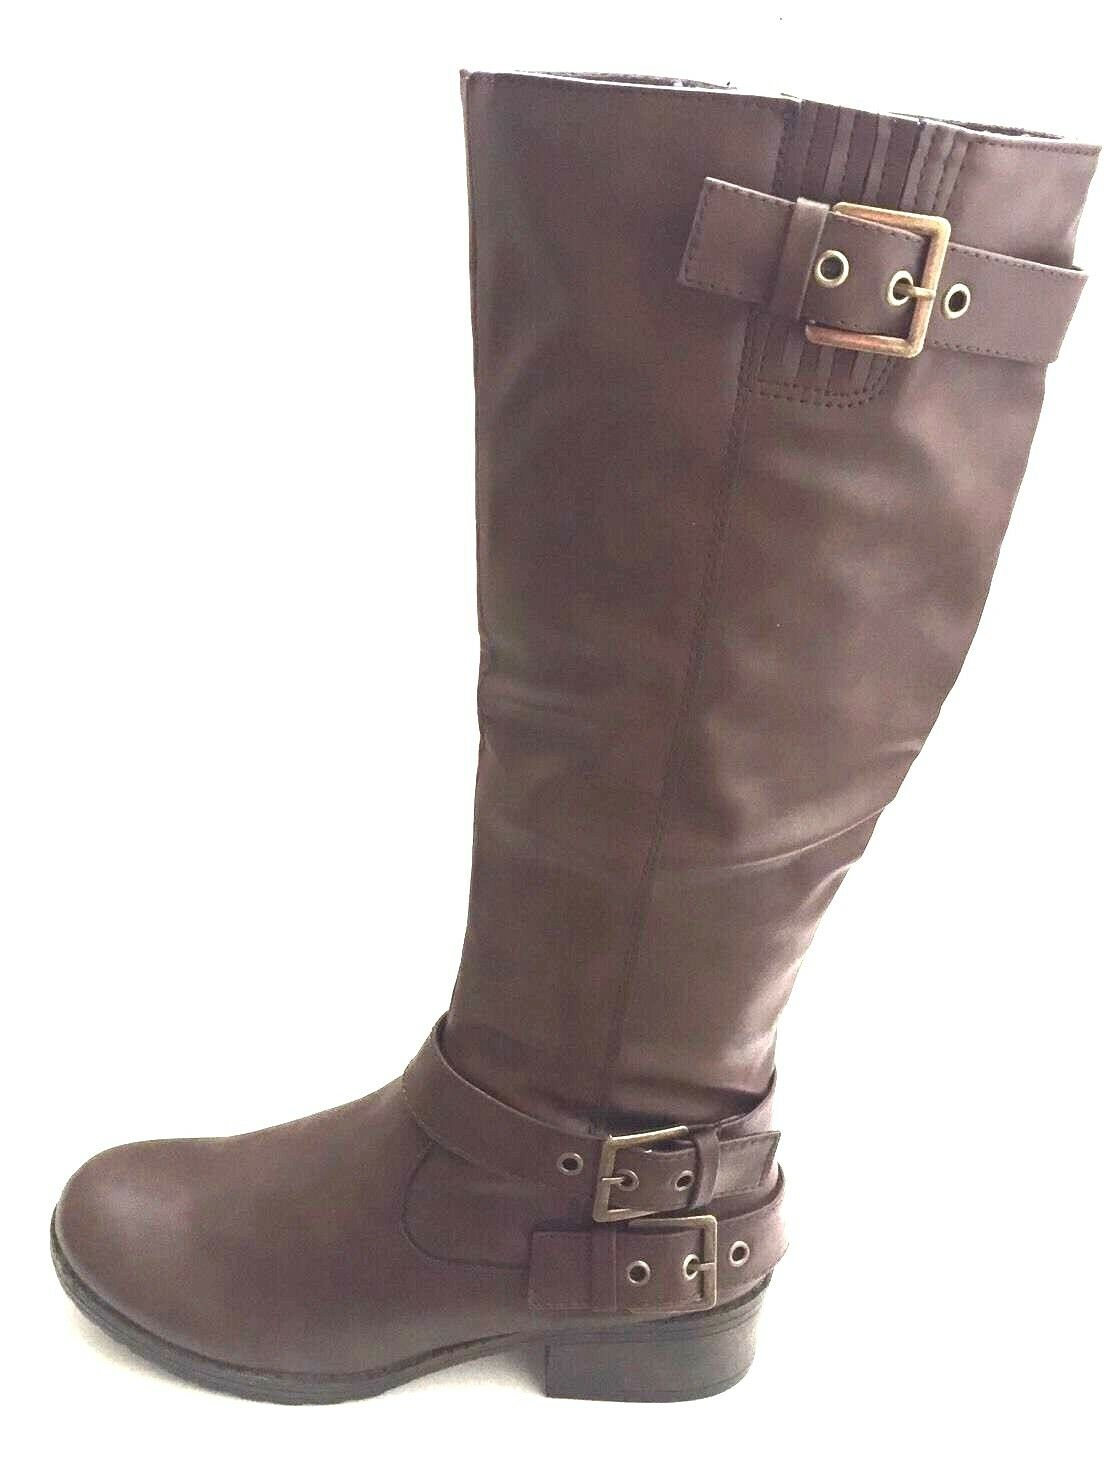 SO Women's Tall Riding Boots size 8.5M shoes Buckle Dark  Brown  Retail 89.99